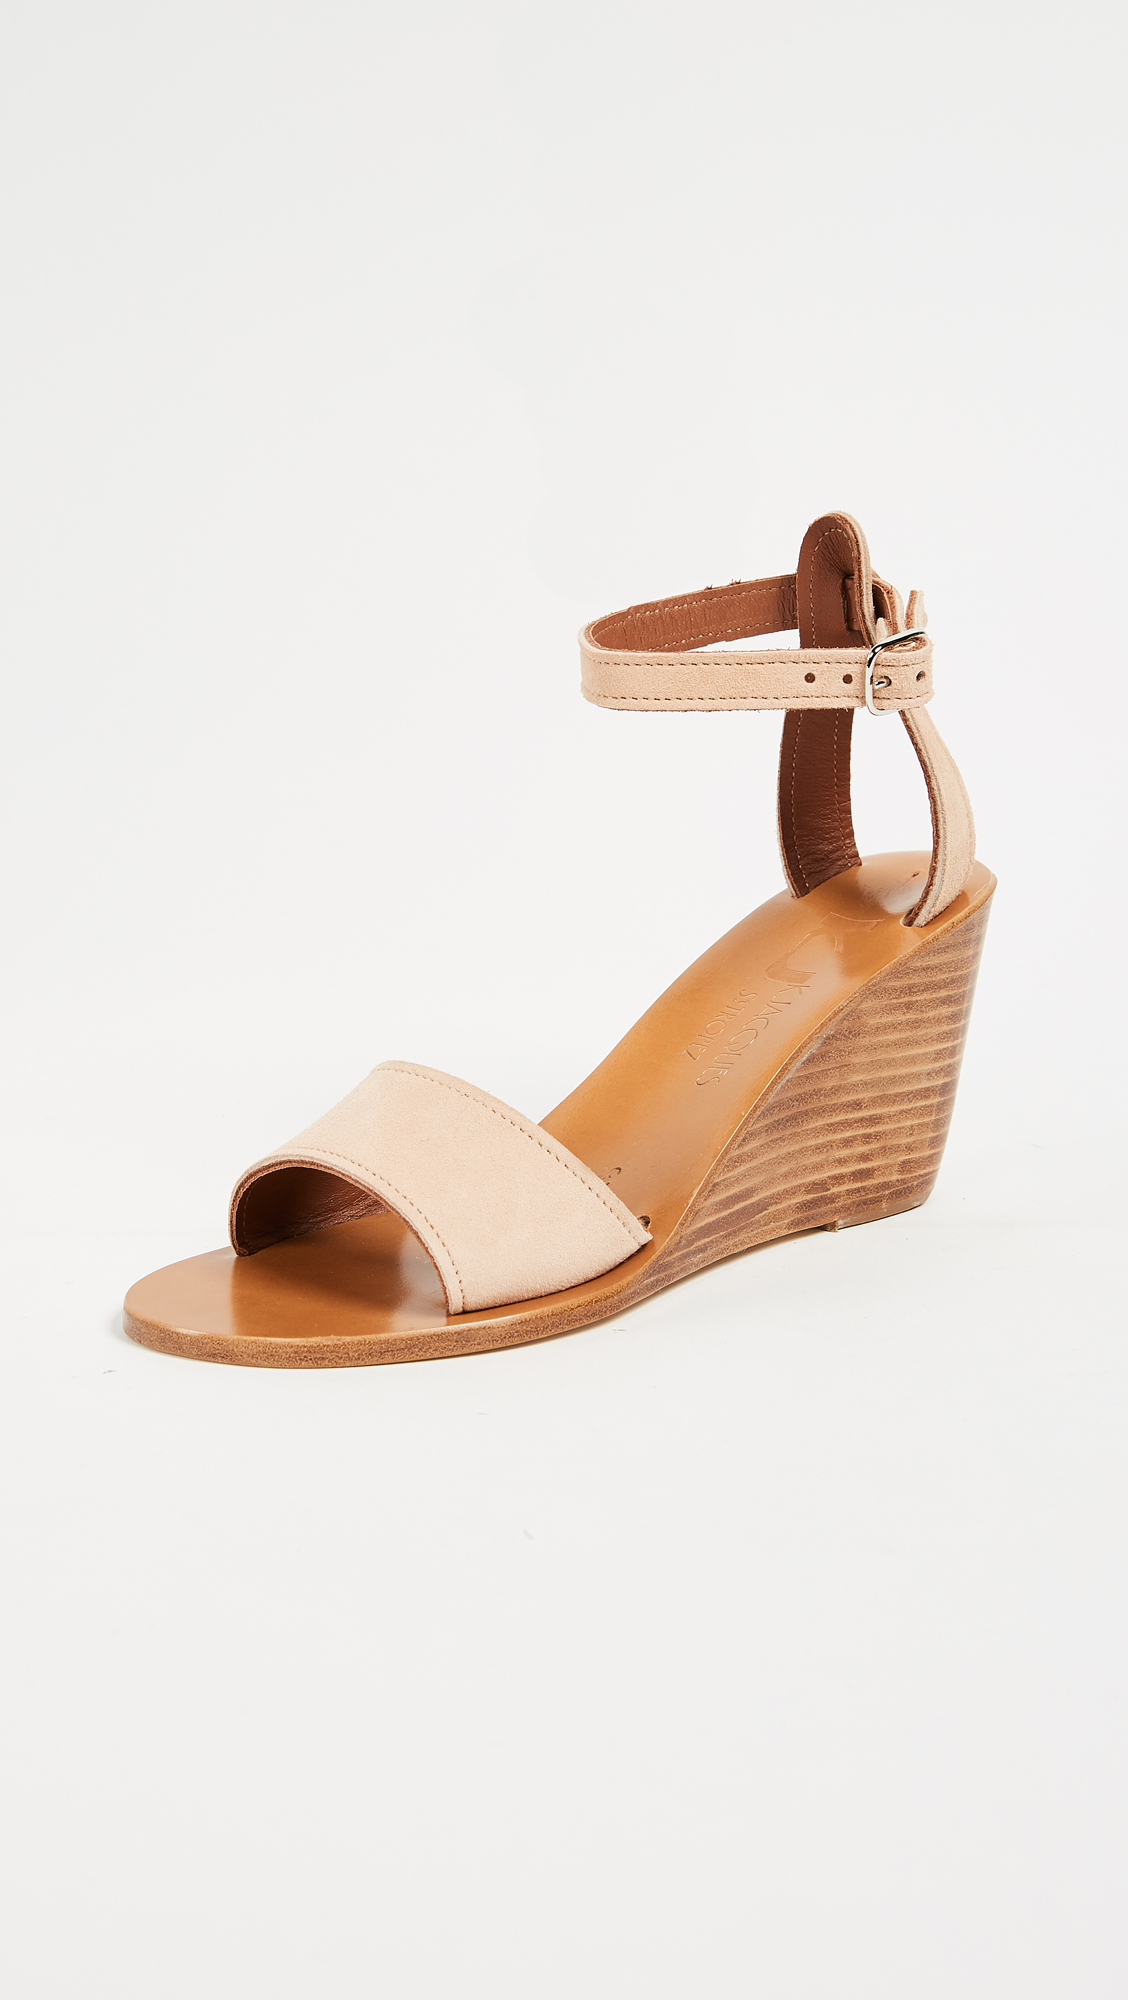 K. Jacques Sardaigne Wedges - Velours Make Up